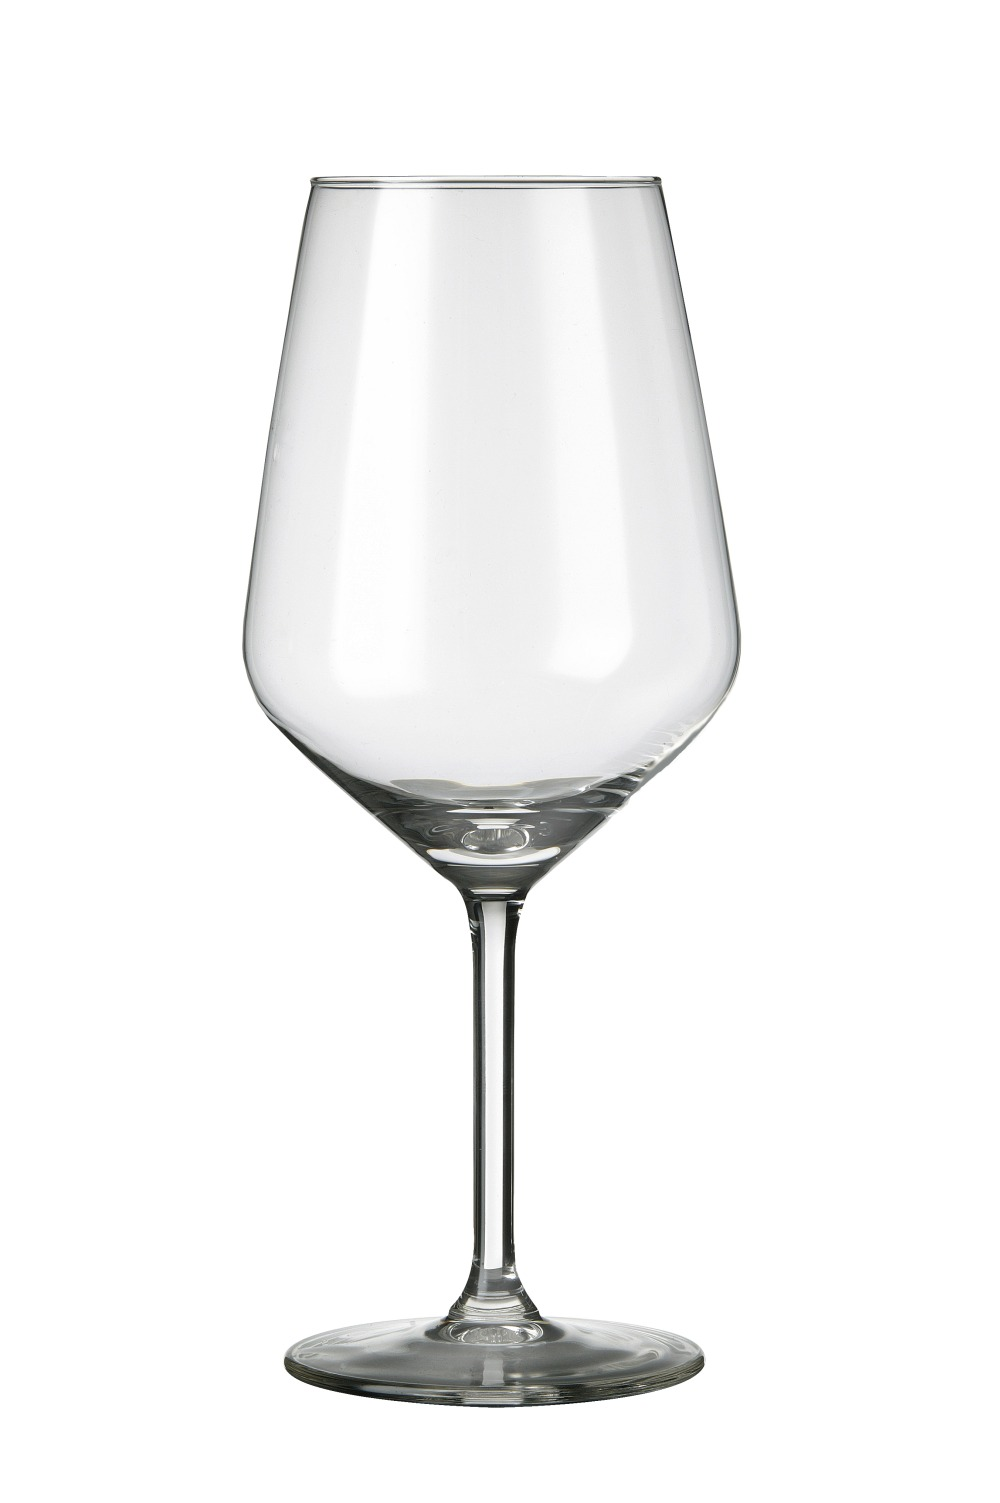 royal_leerdam_wijnglas_carre_53cl.jpg